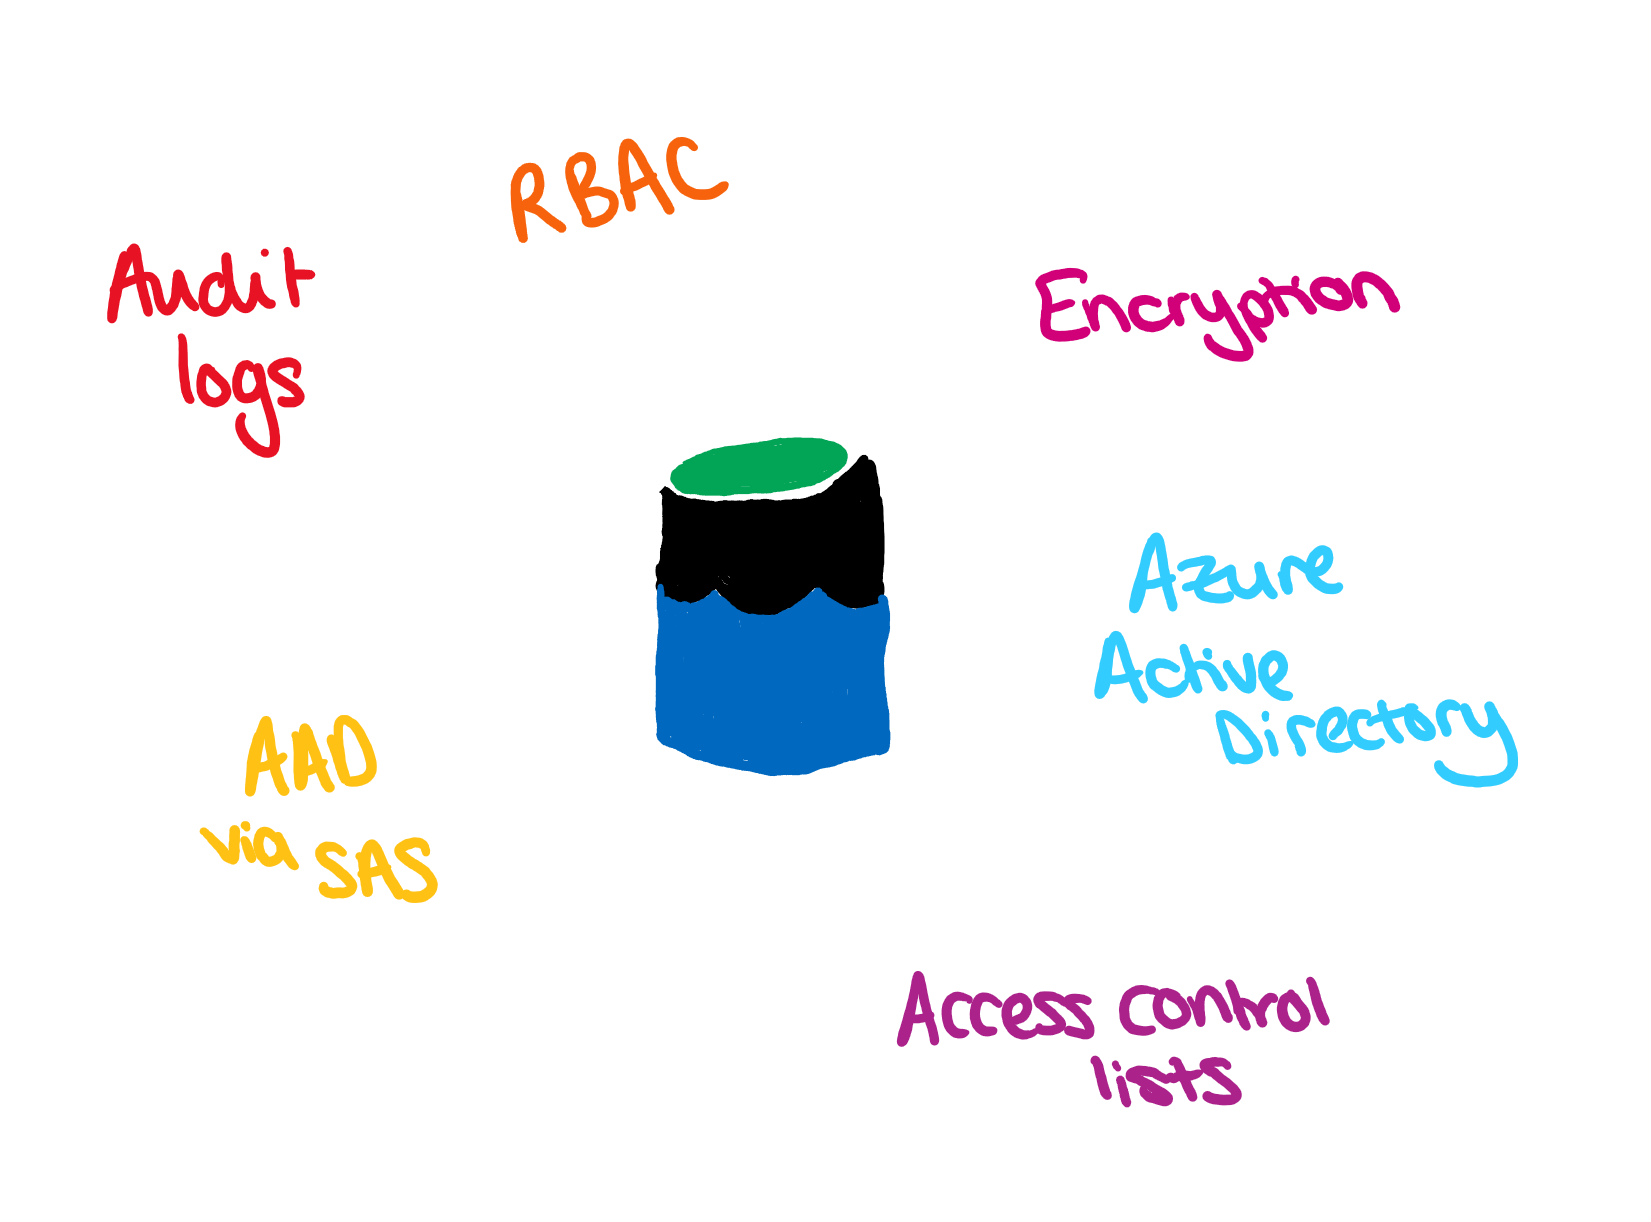 Data Lake logo surrounded by security features.